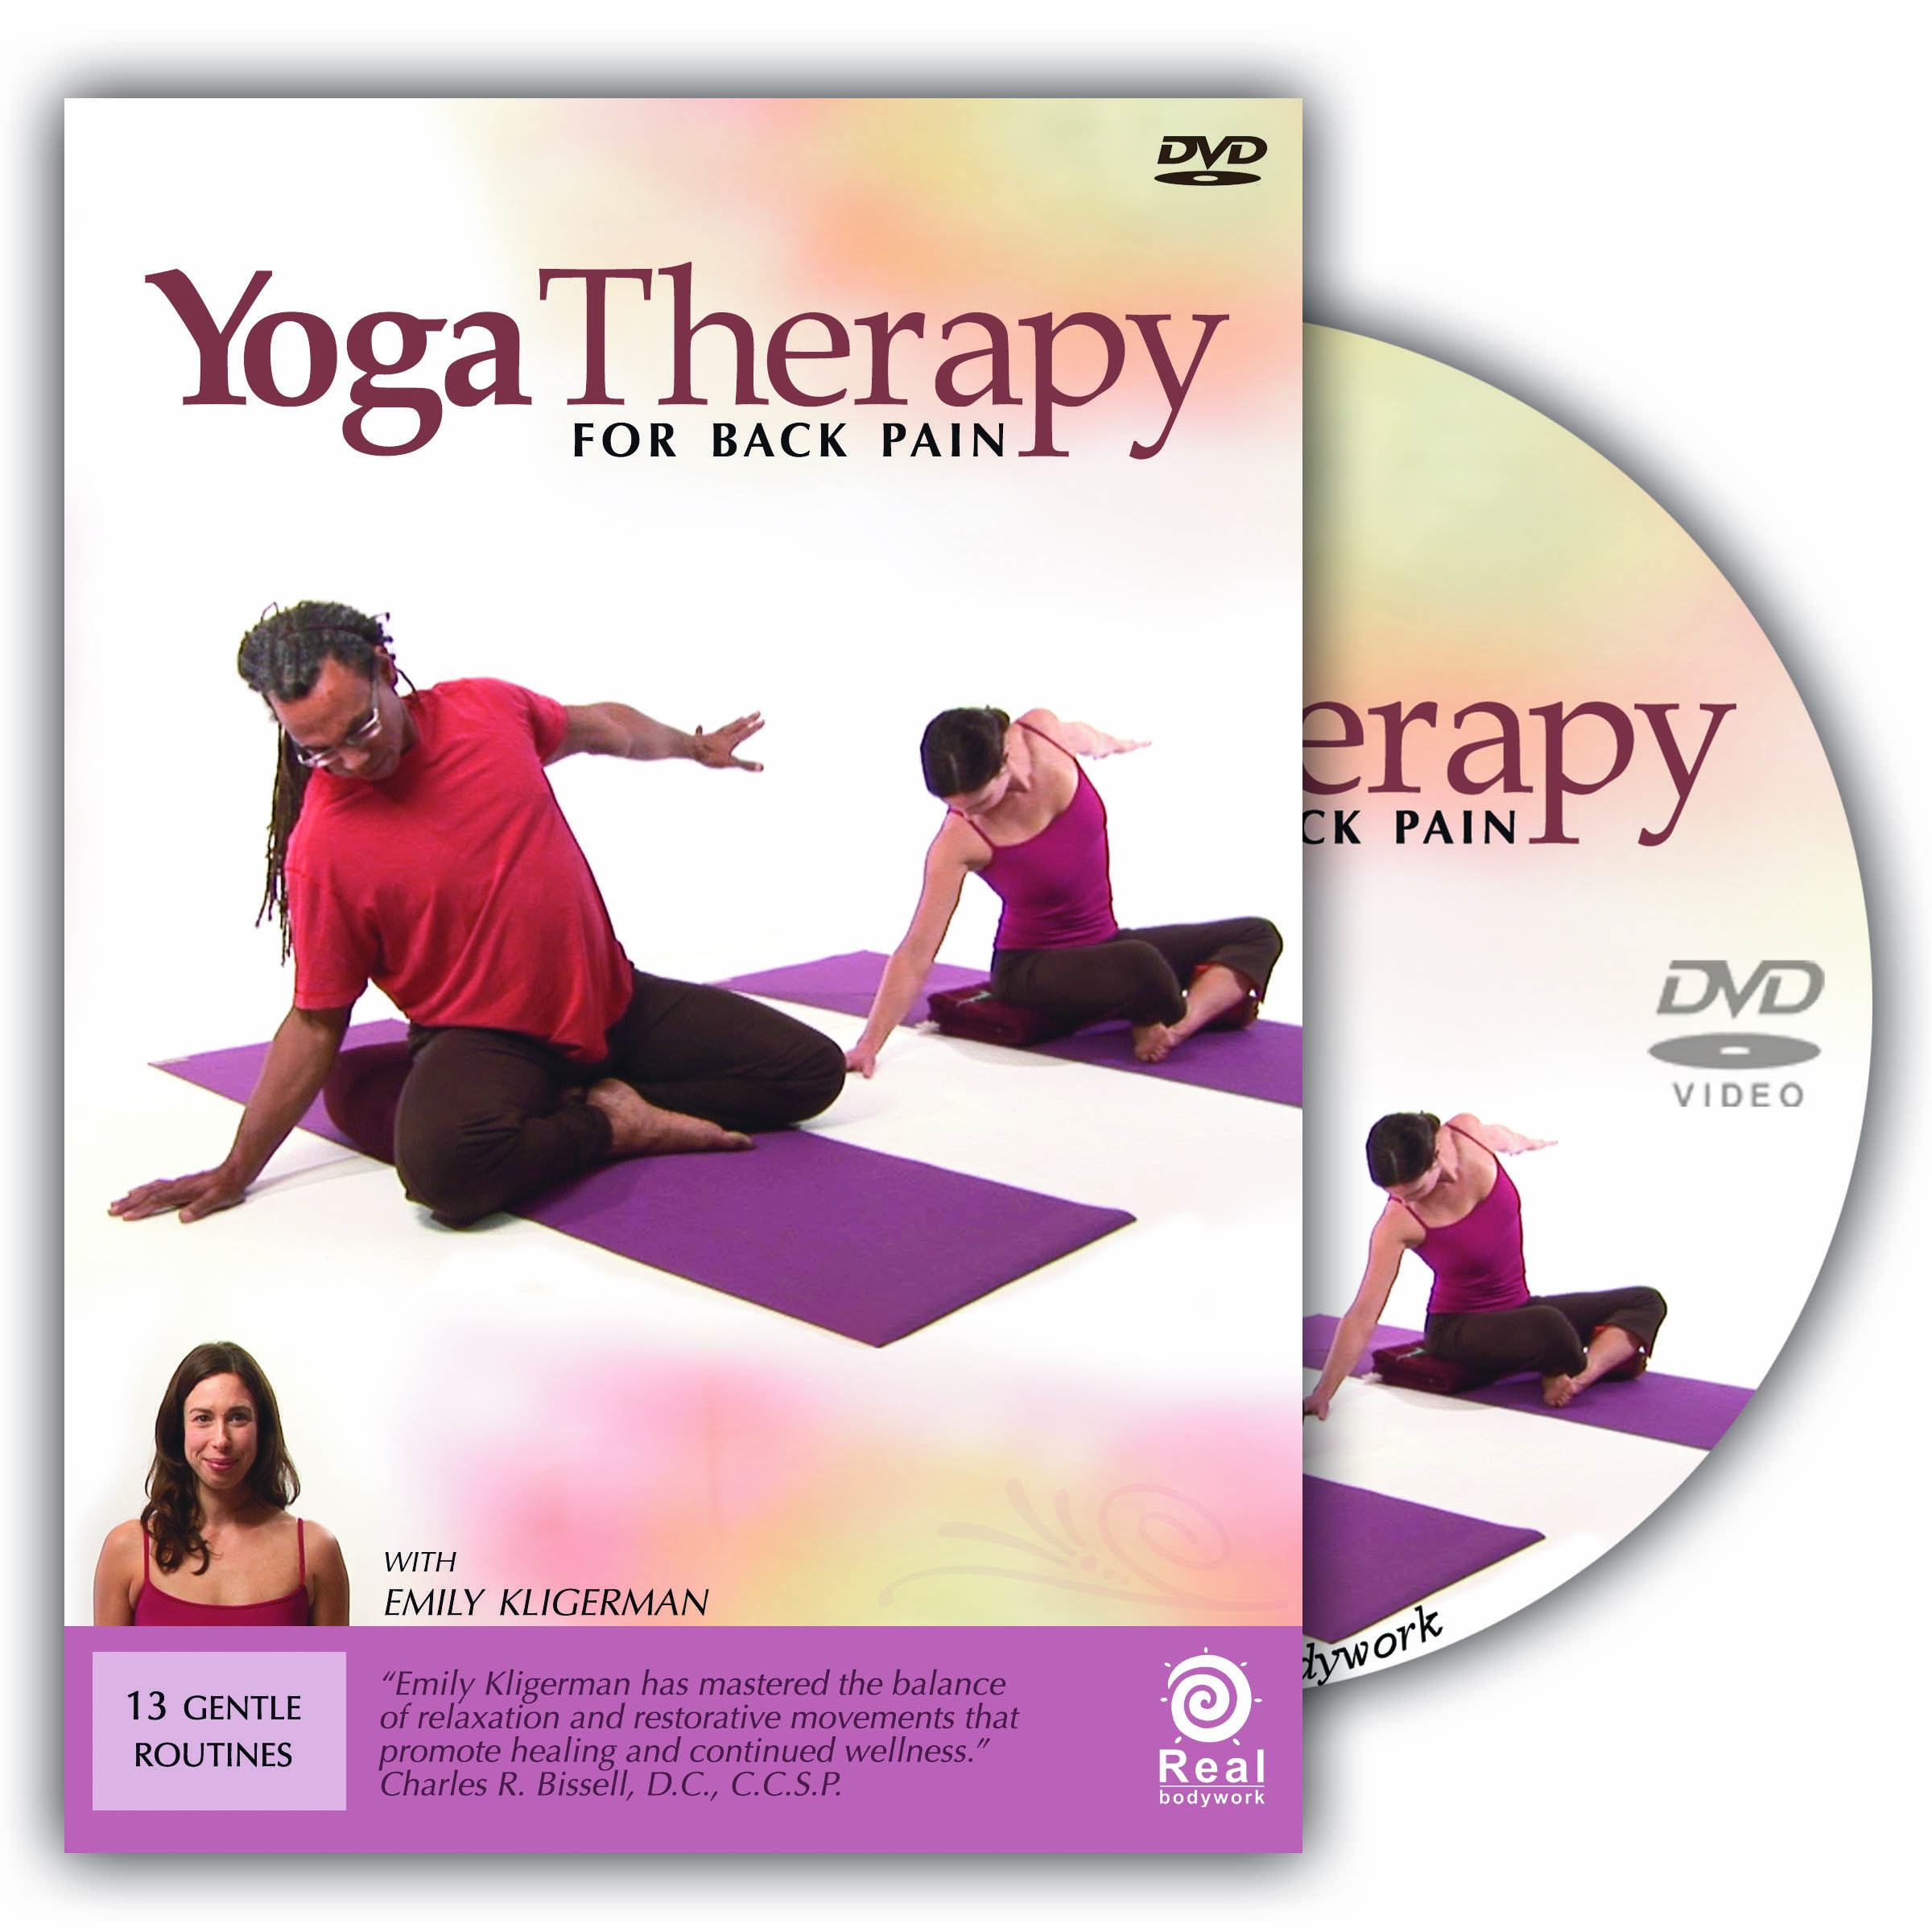 lower back support for chair s shaped dining chairs yoga pain dvd video - real bodywork